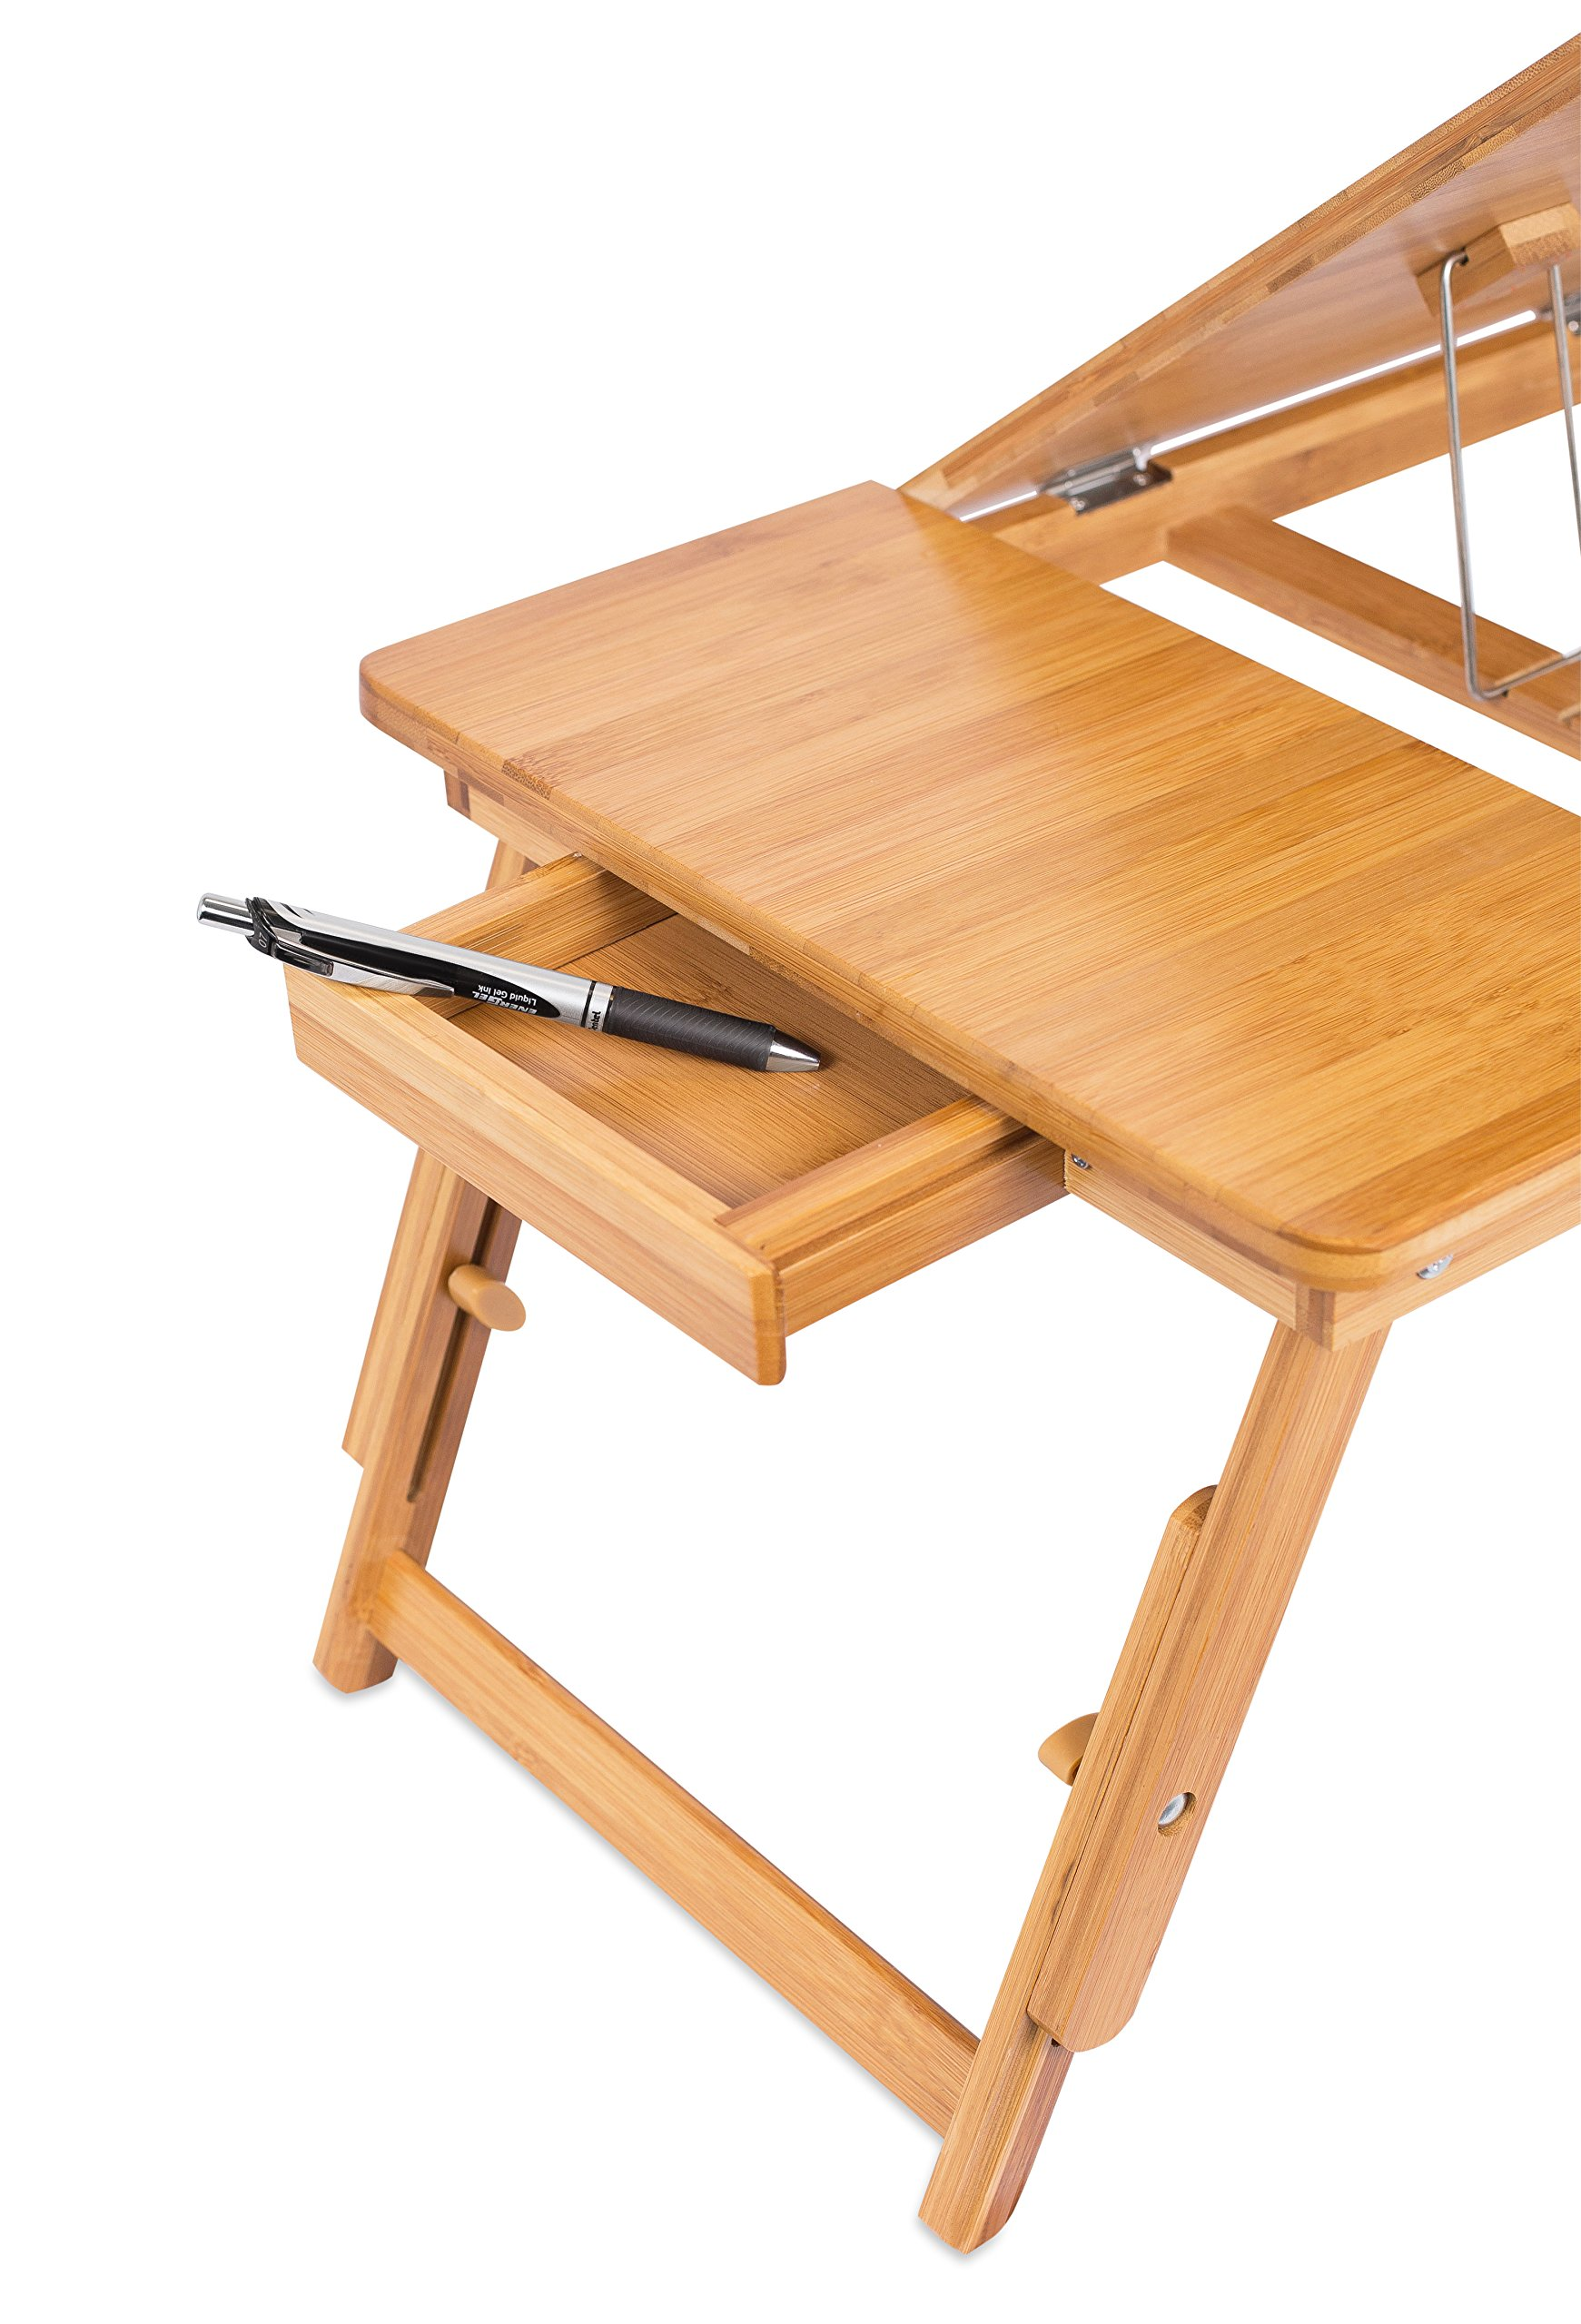 Sofia + Sam Laptop Lap Tray with Adjustable Legs | Bamboo | Foldable Breakfast Serving Bed Tray | Lap Desk with Tilting Top and Side Drawer | Laptop Stand | Natural by Sofia + Sam (Image #8)